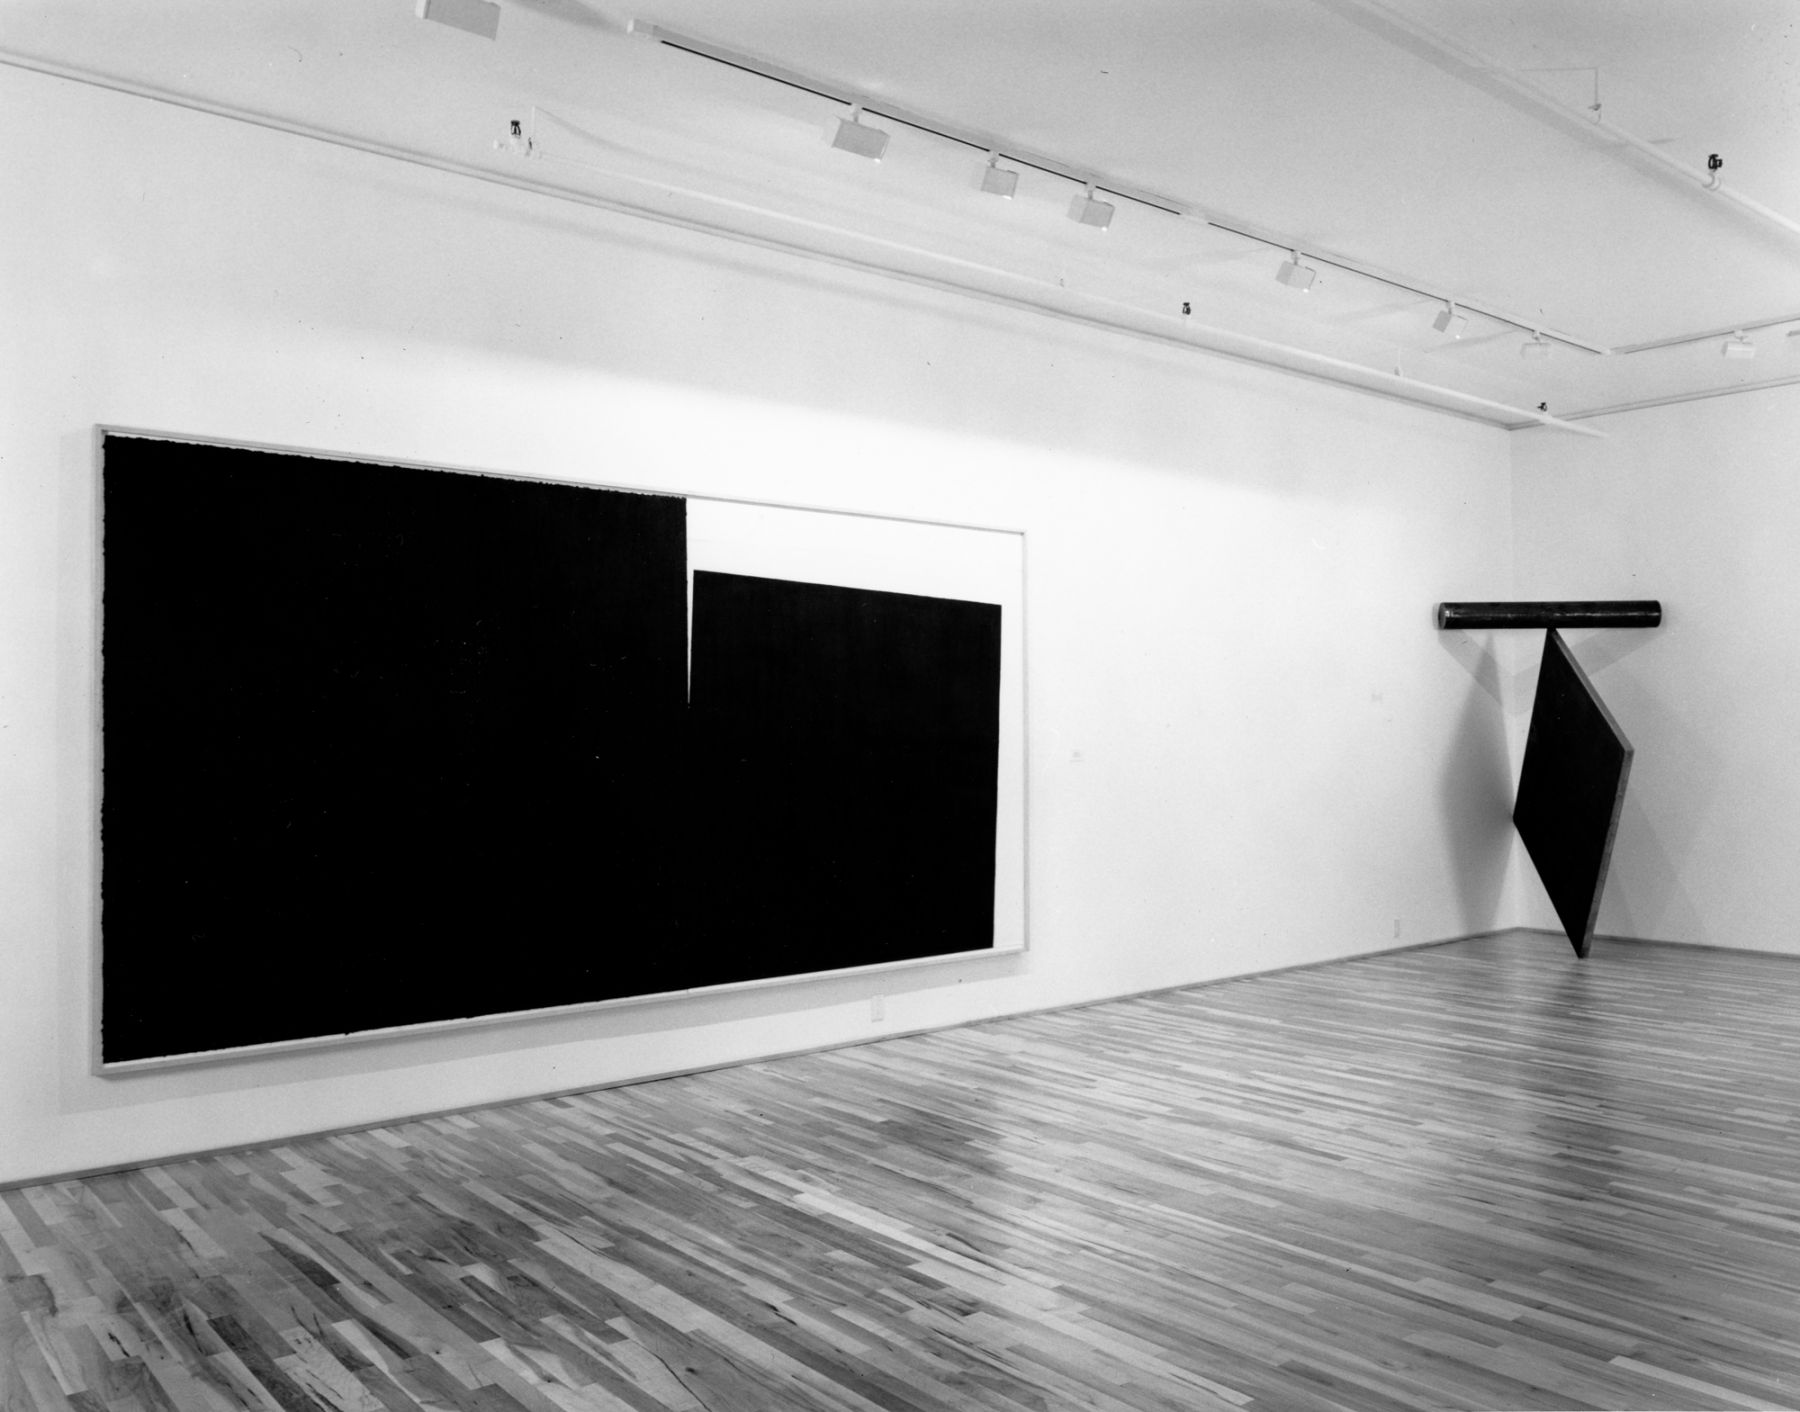 Installation view, Bruce Nauman, Richard Serra, 578 BROADWAY